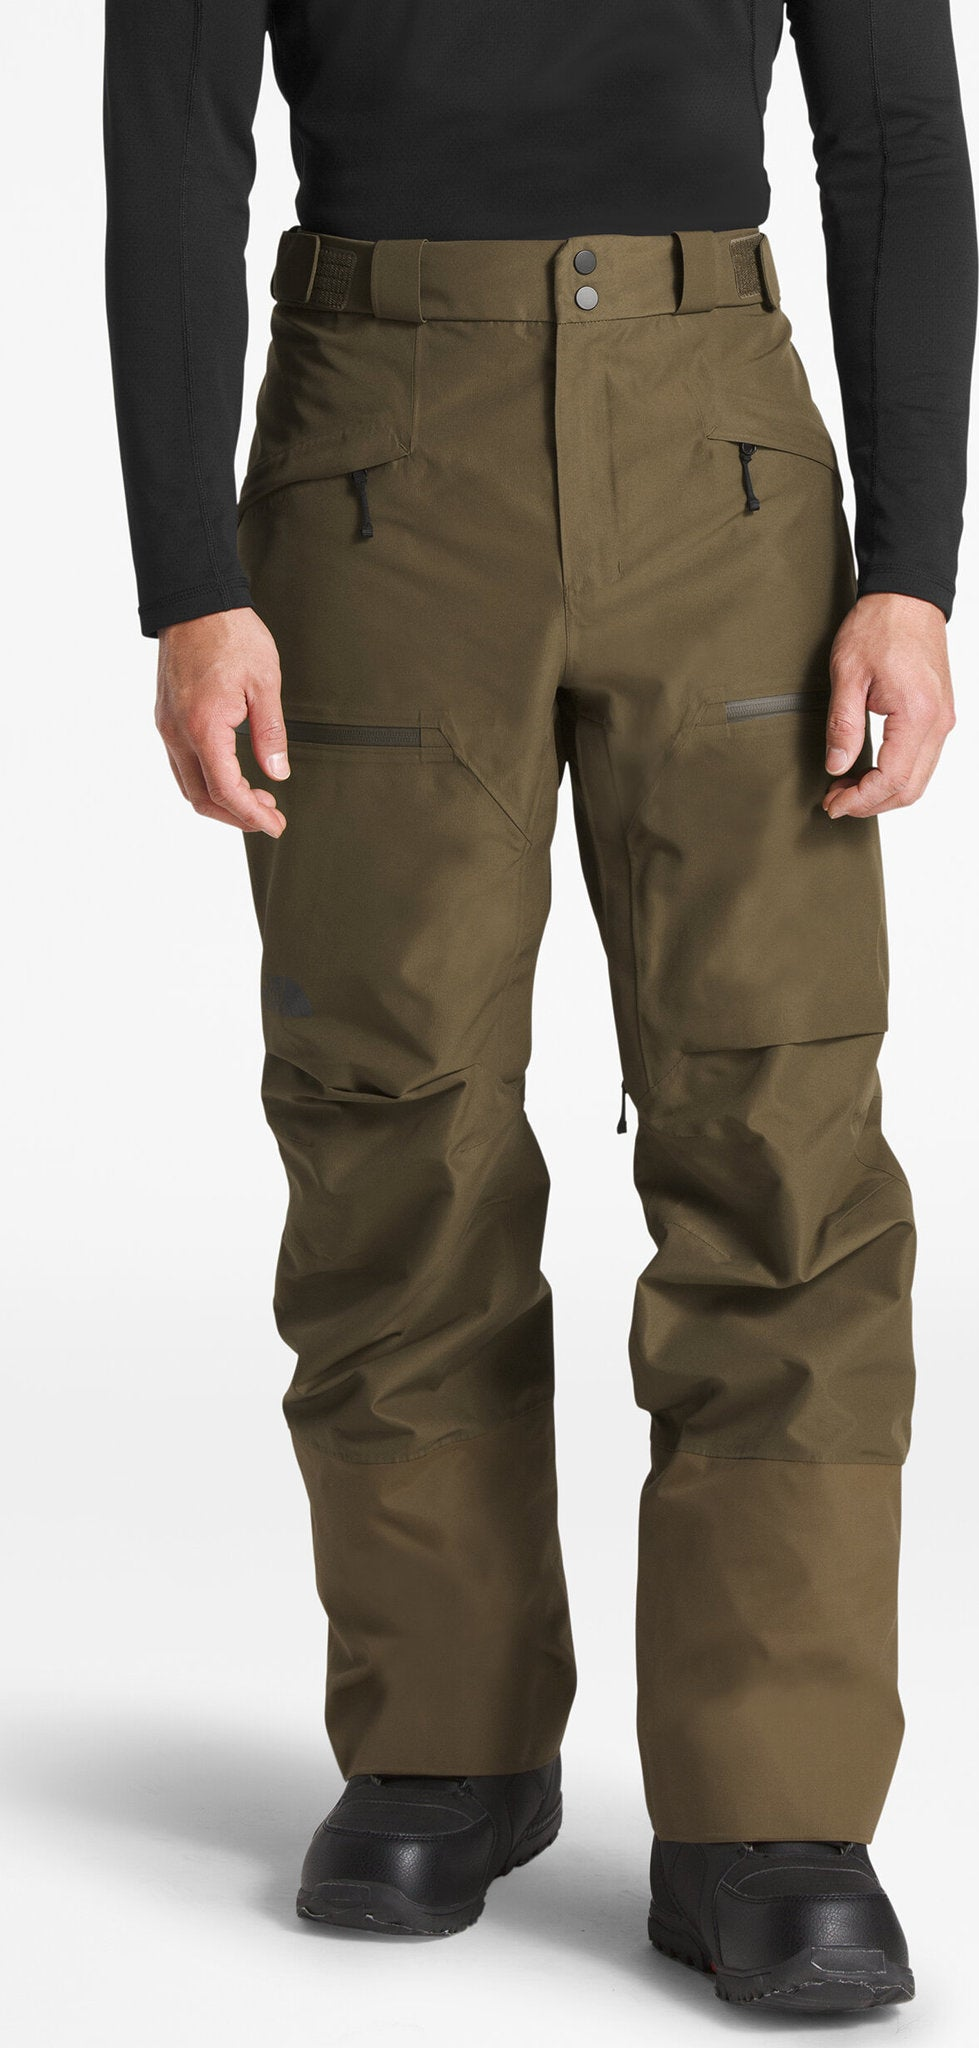 3de5b5f7b Powderflo Pants - Men's